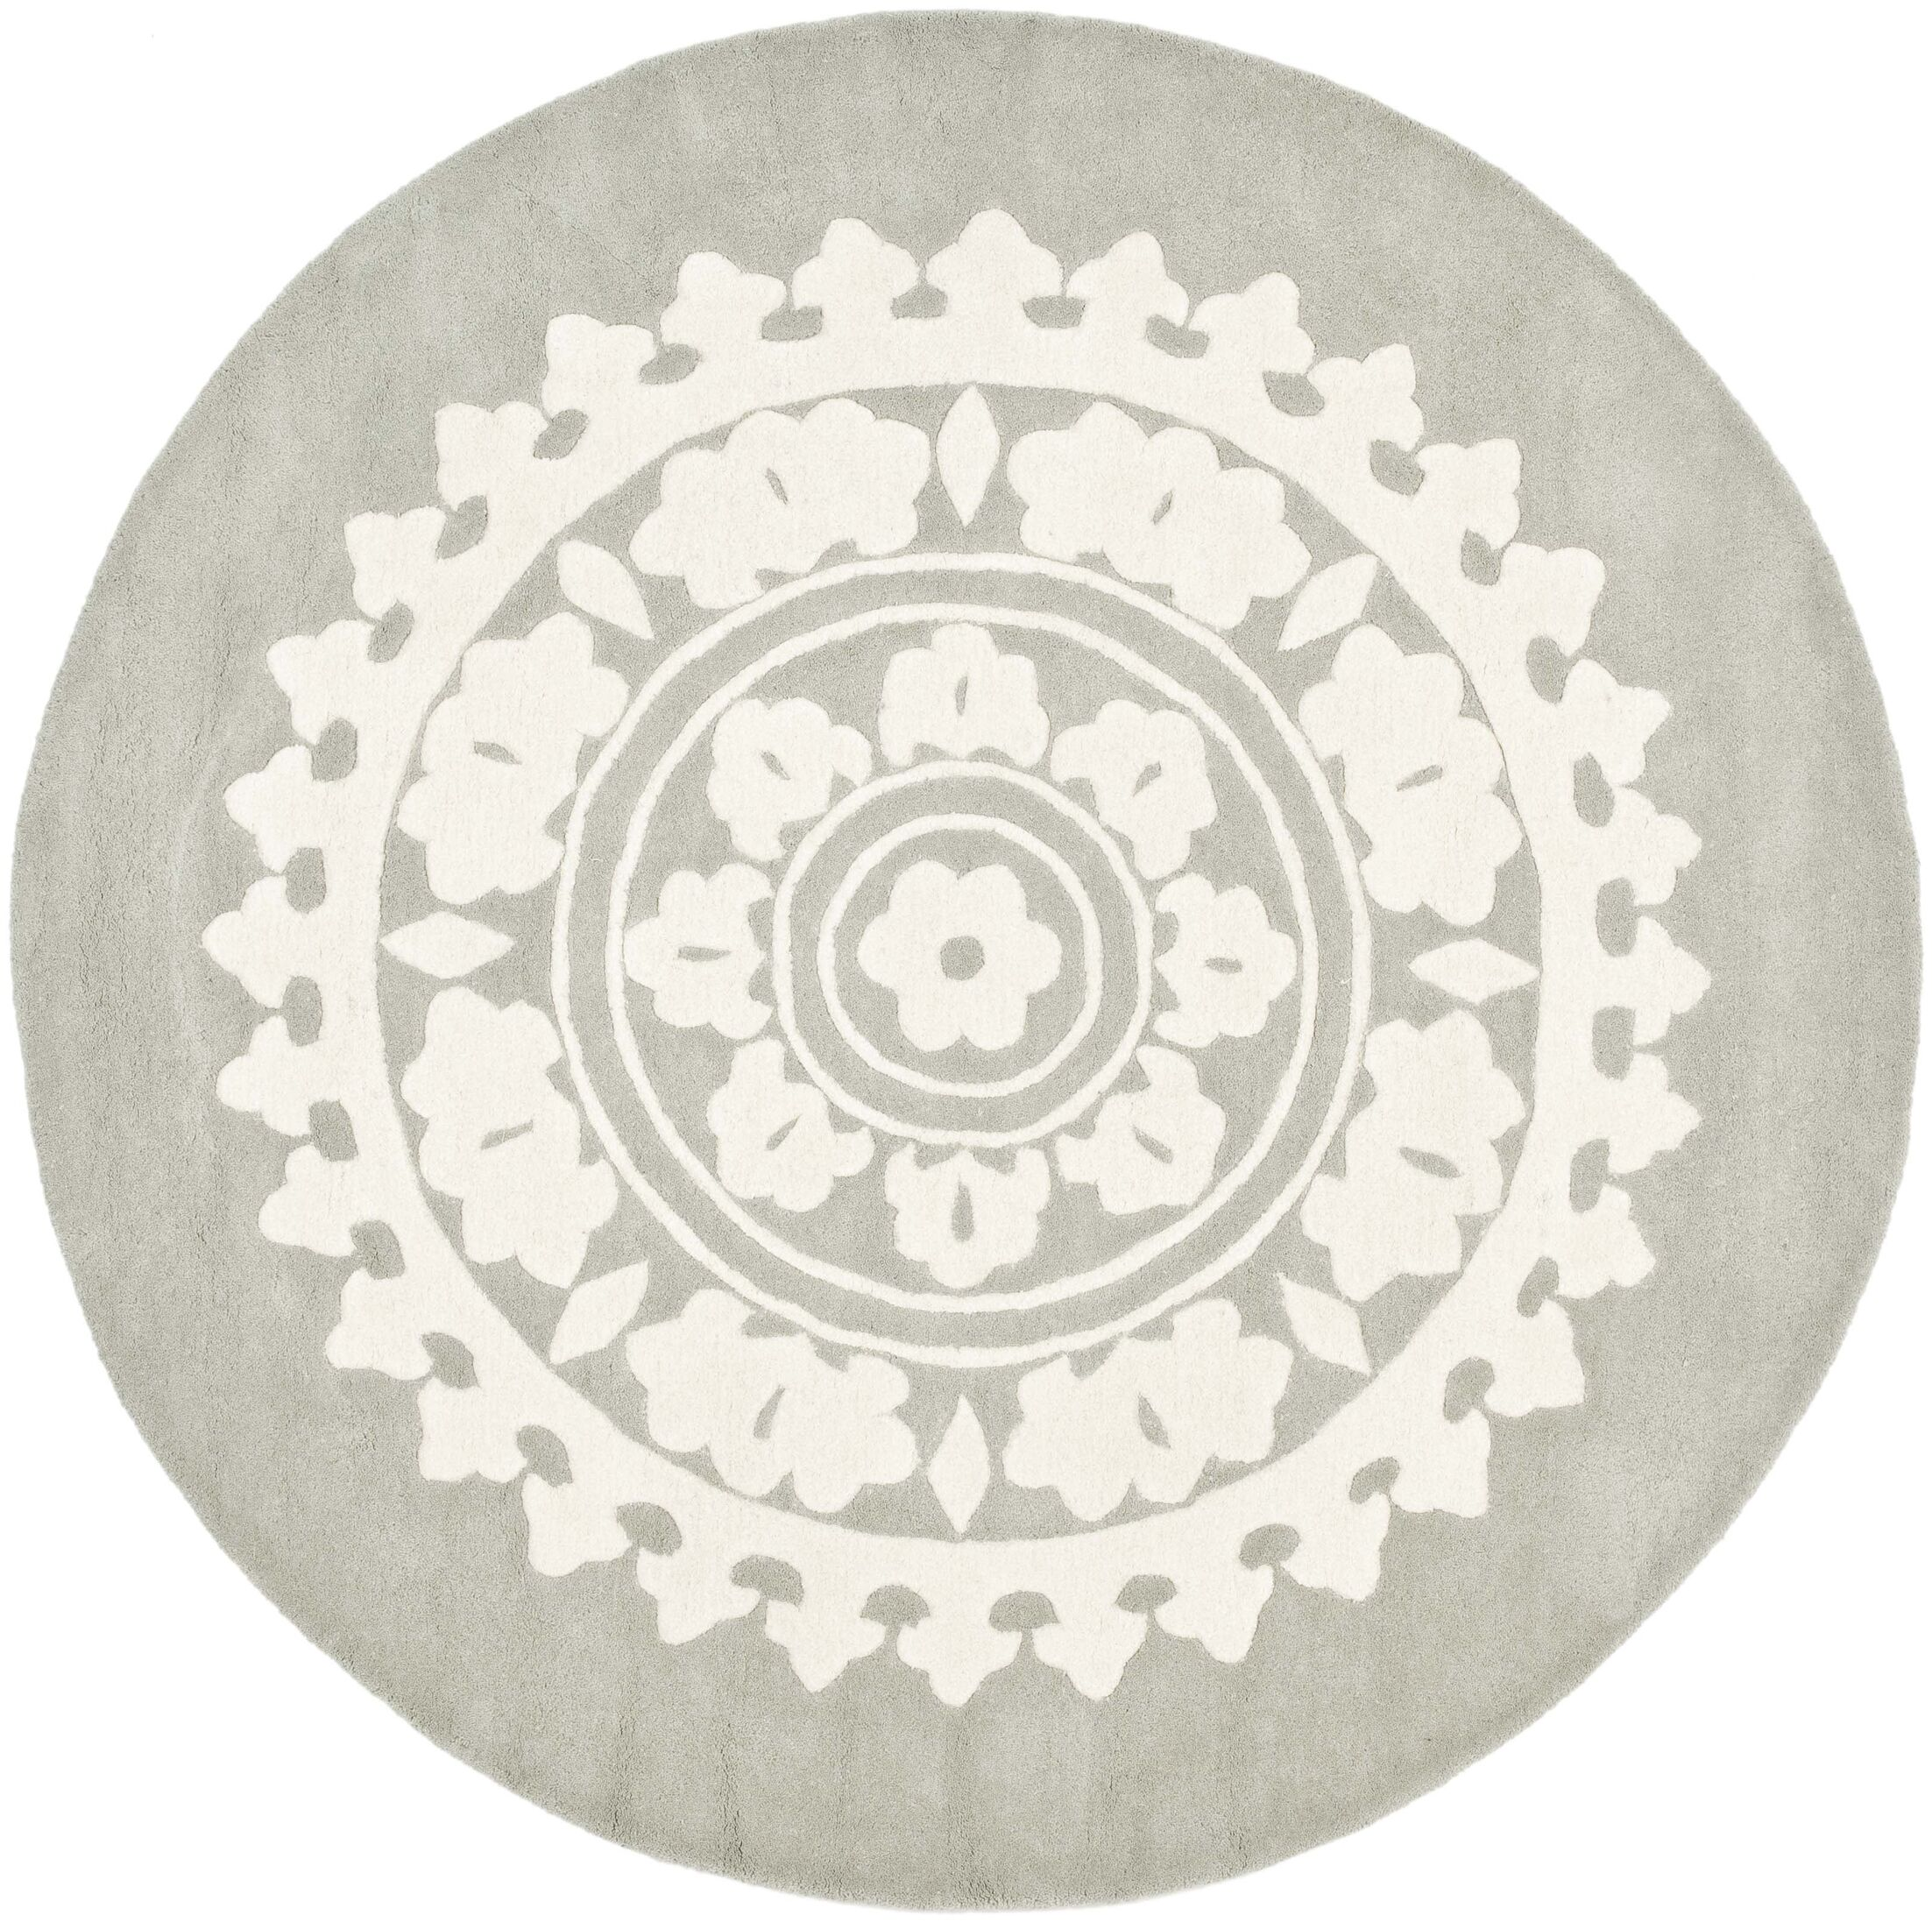 Hawley Hand-Woven Gray Area Rug Rug Size: Round 8'